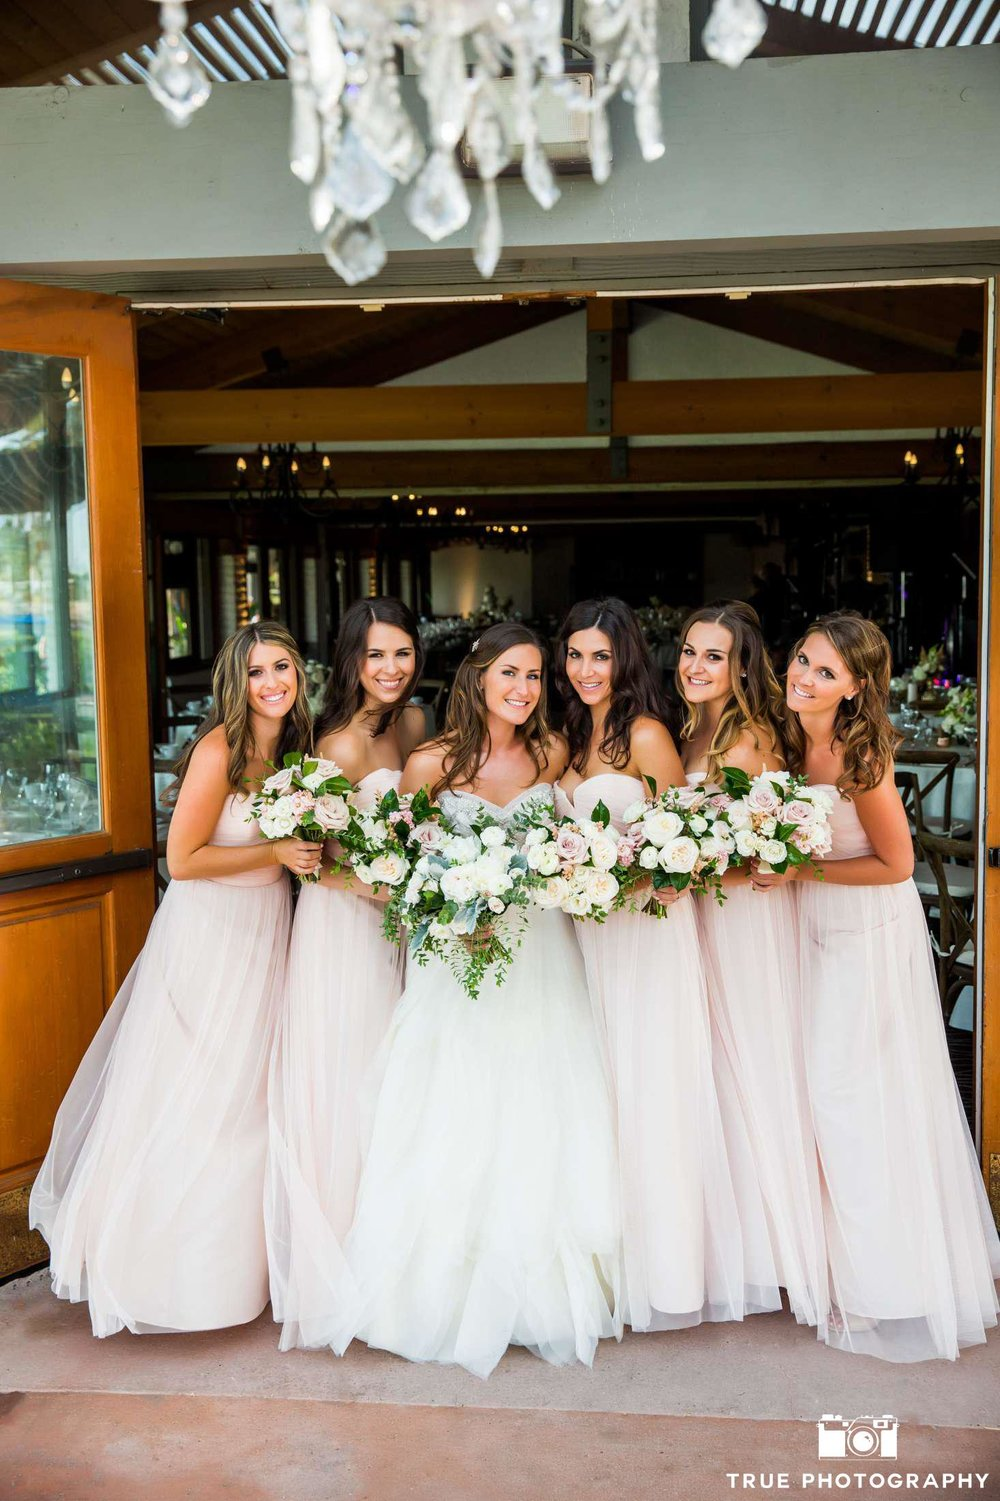 Blush & ivory bridesmaid bouquets by San Diego wedding florist, Compass Floral.